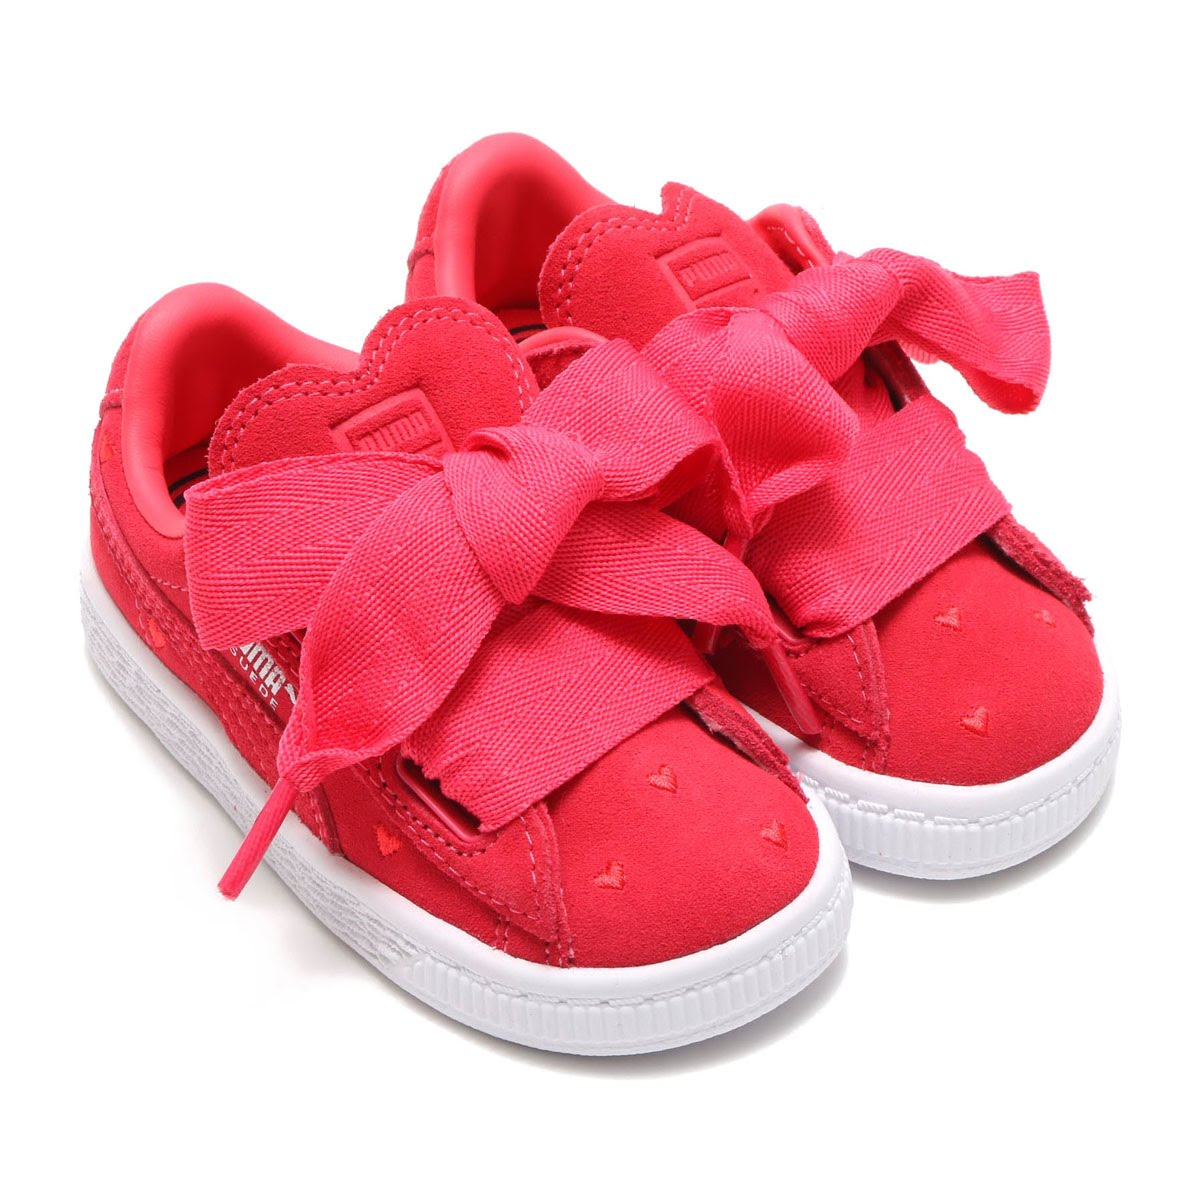 606ff2853fba It is a sneaker of the kids size than HEART collection characterized by the  cute ribbon. Of course it is the item which is recommended as a special  present ...